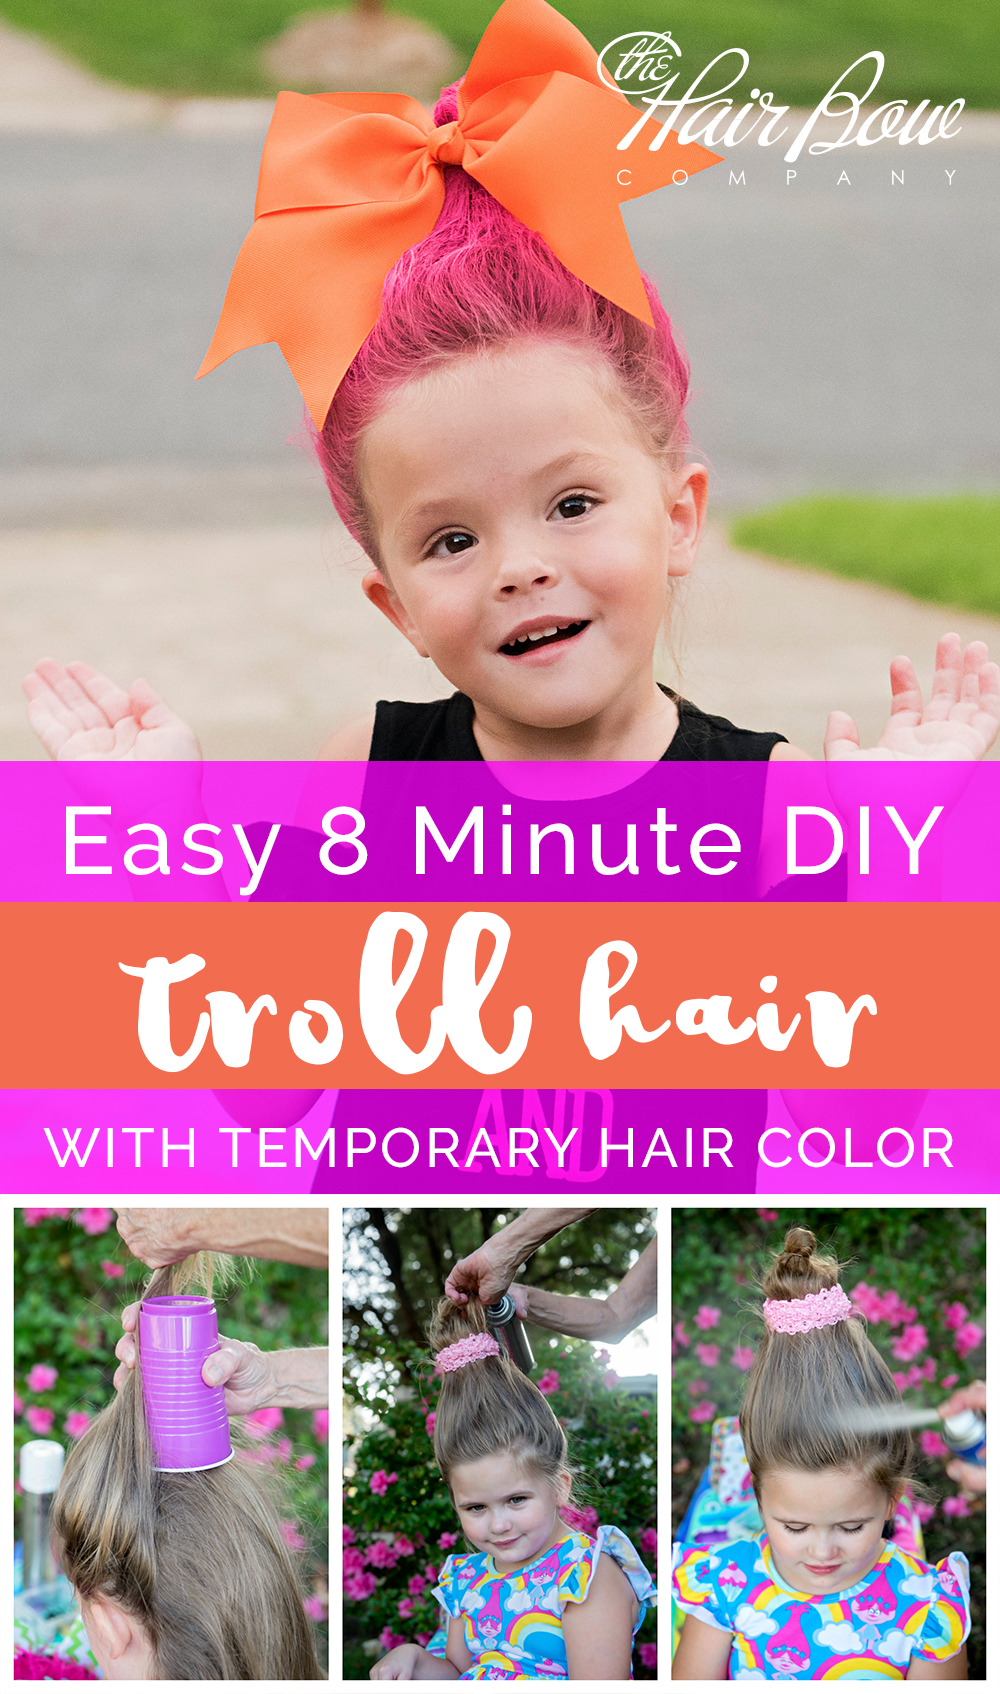 Easy DIY Troll Hair Style Tutorial by The Hair Bow Company  sc 1 st  The Hair Bow Company & DIY Troll Hair Styles with Temporary Color - The Hair Bow Company